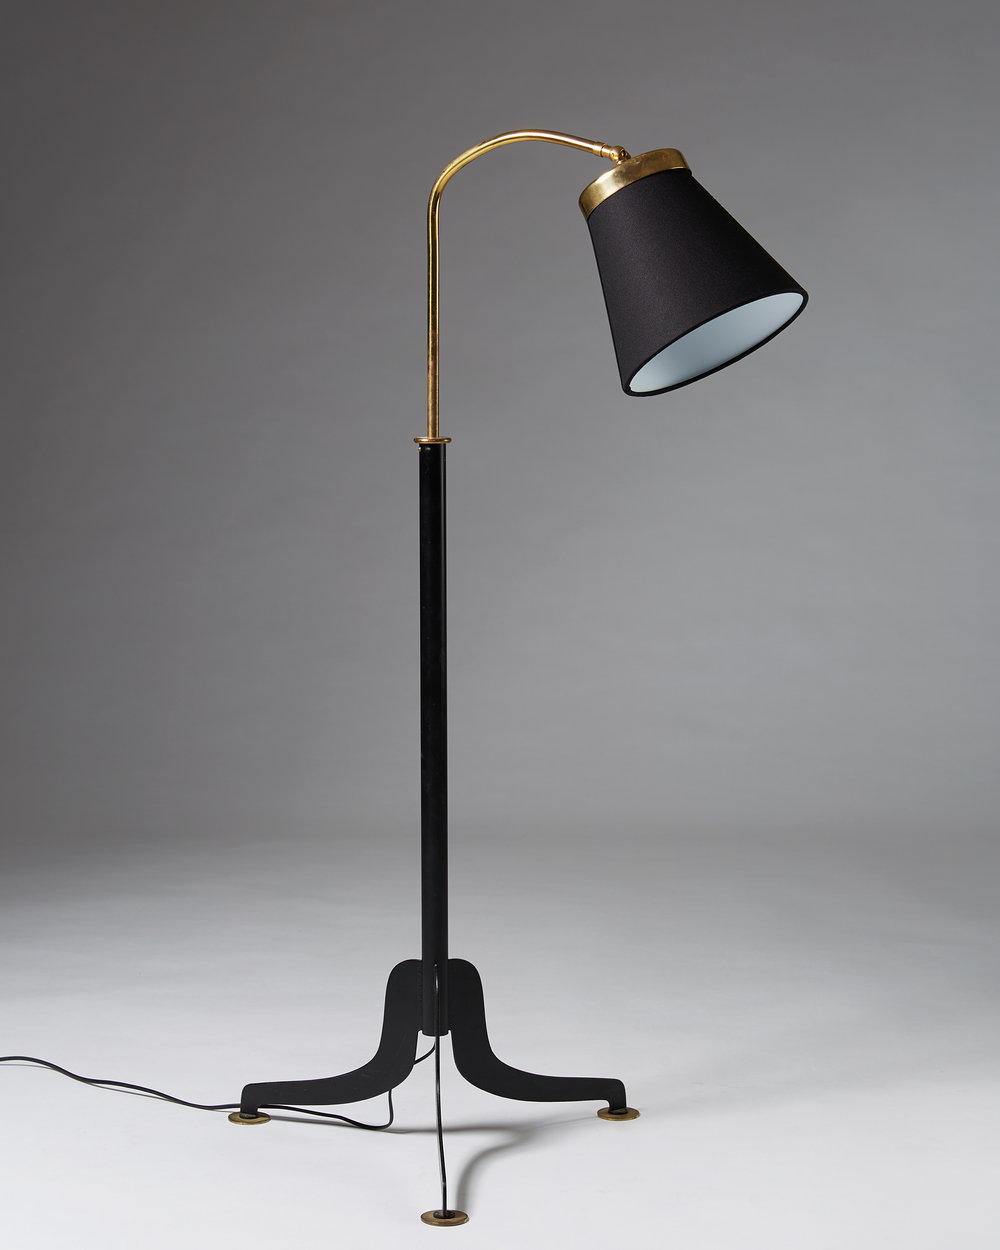 Josef Frank  Floor lamp Sweden, 1950's Polished and lacquered brass with black textile shade.